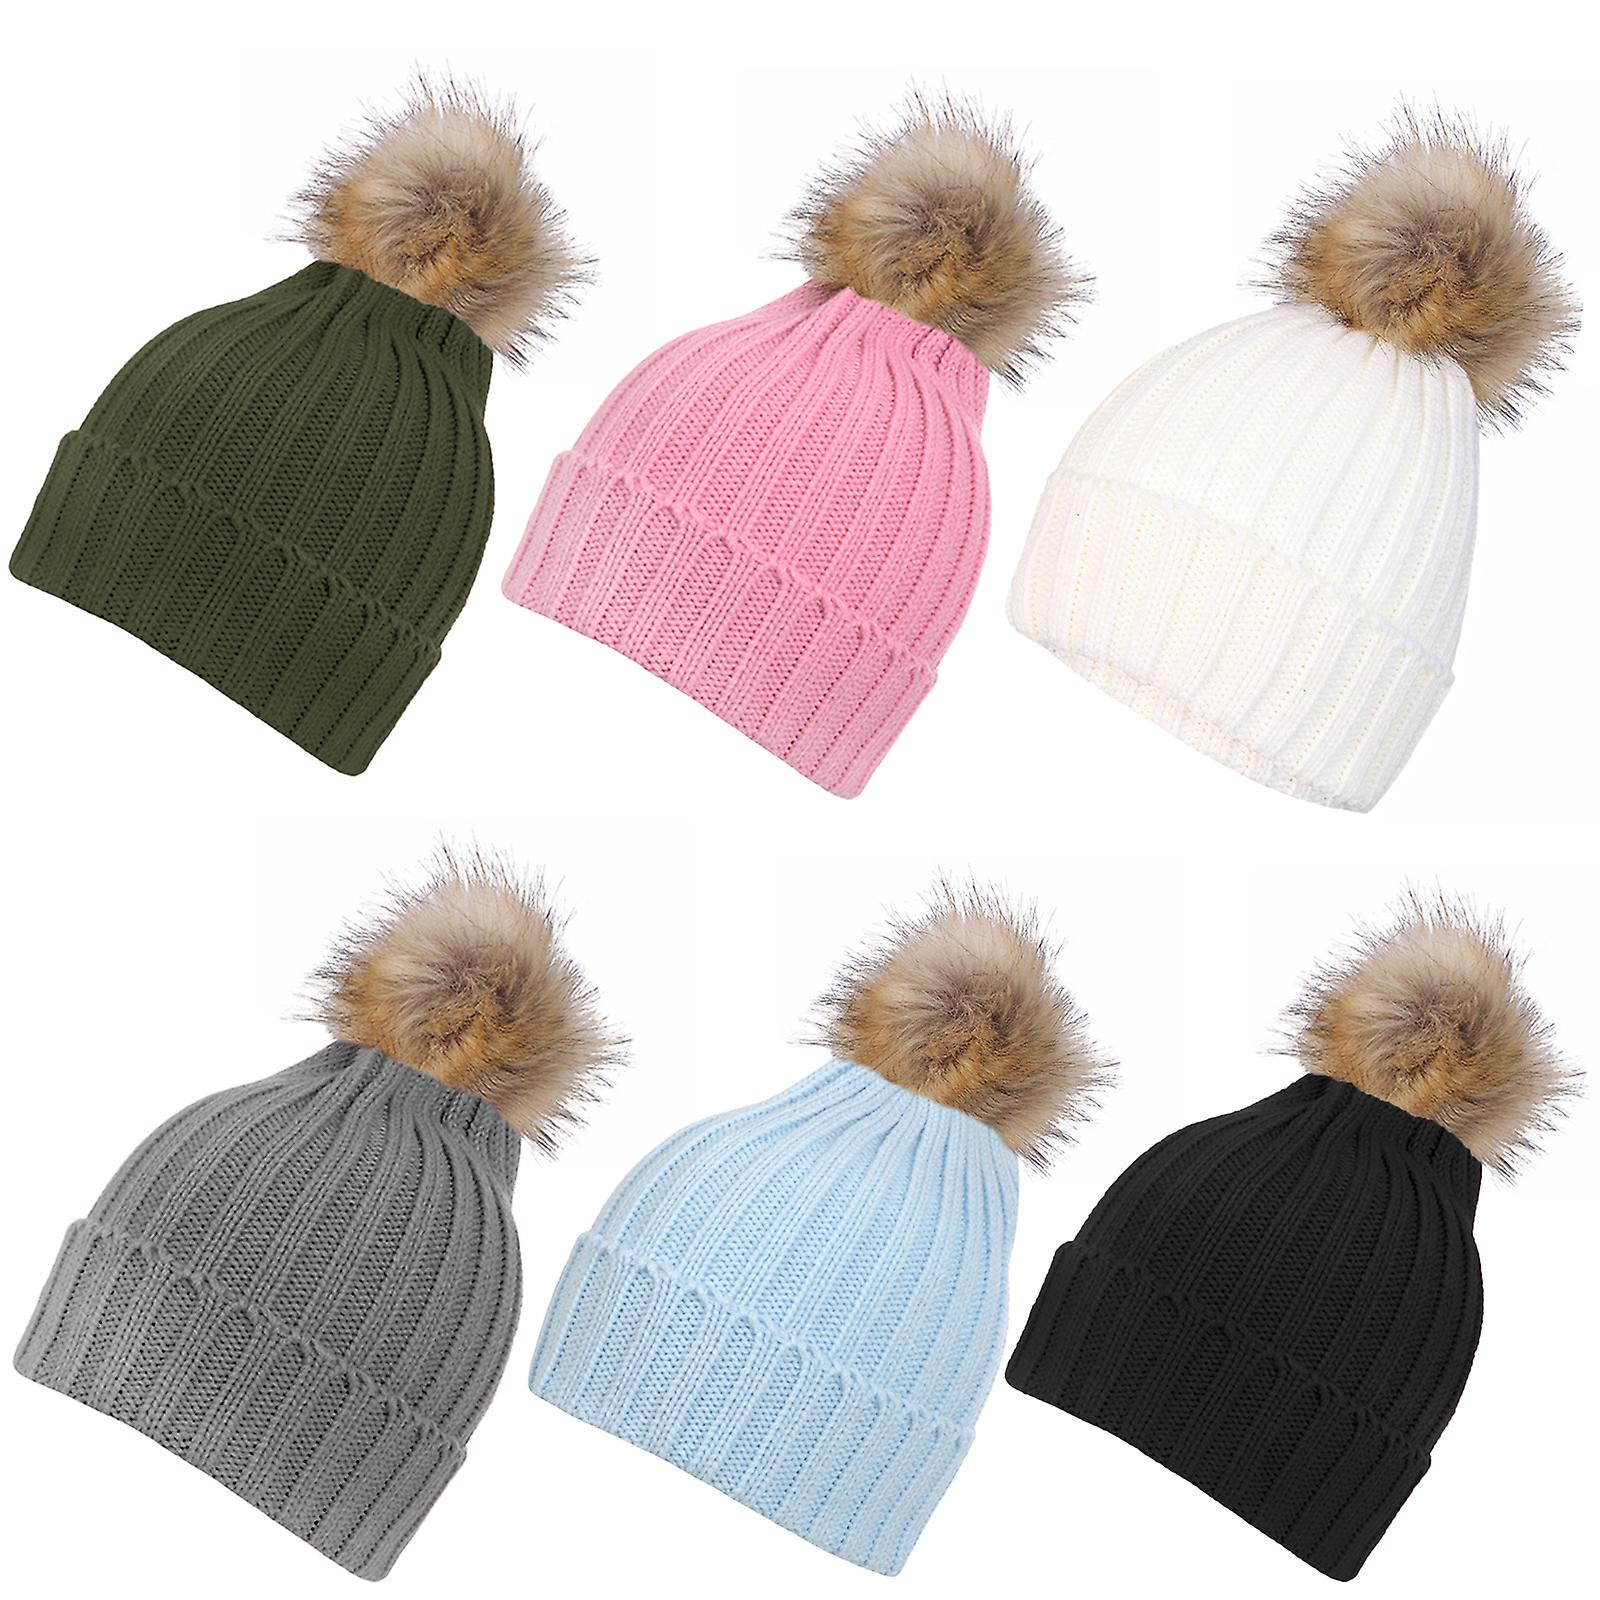 Inspirations Womens Fluffy Faux Fur Pom Pom Beanie Hat Knitted Bobble Hat 0ad7995fe5d